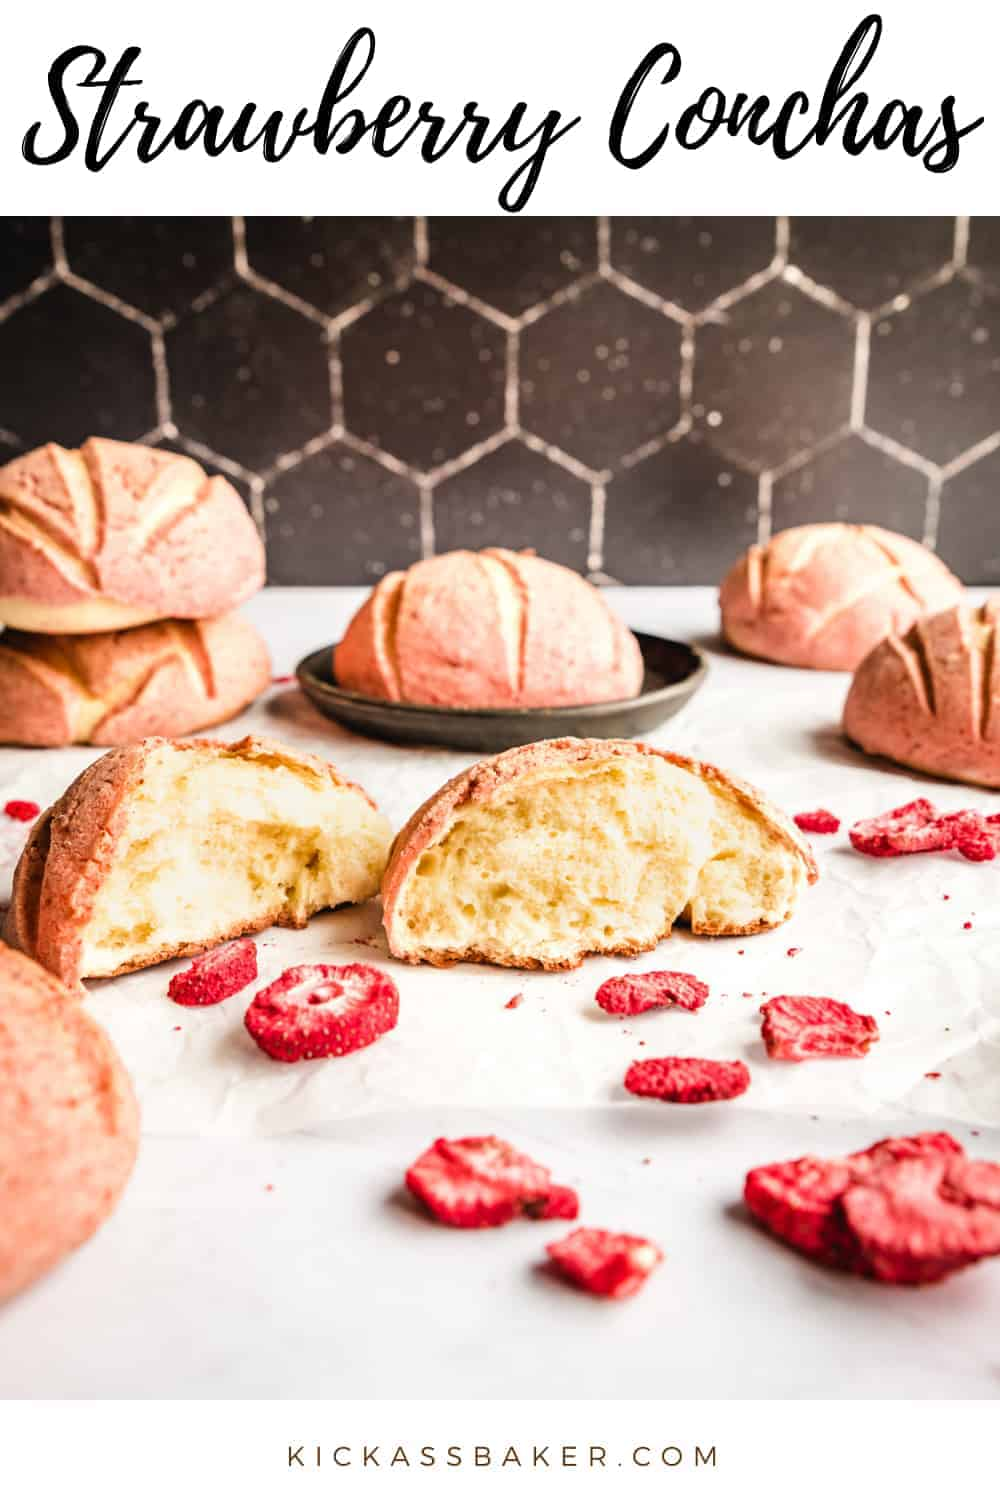 Strawberry Conchas | kickassbaker.com pin for pinterest with text